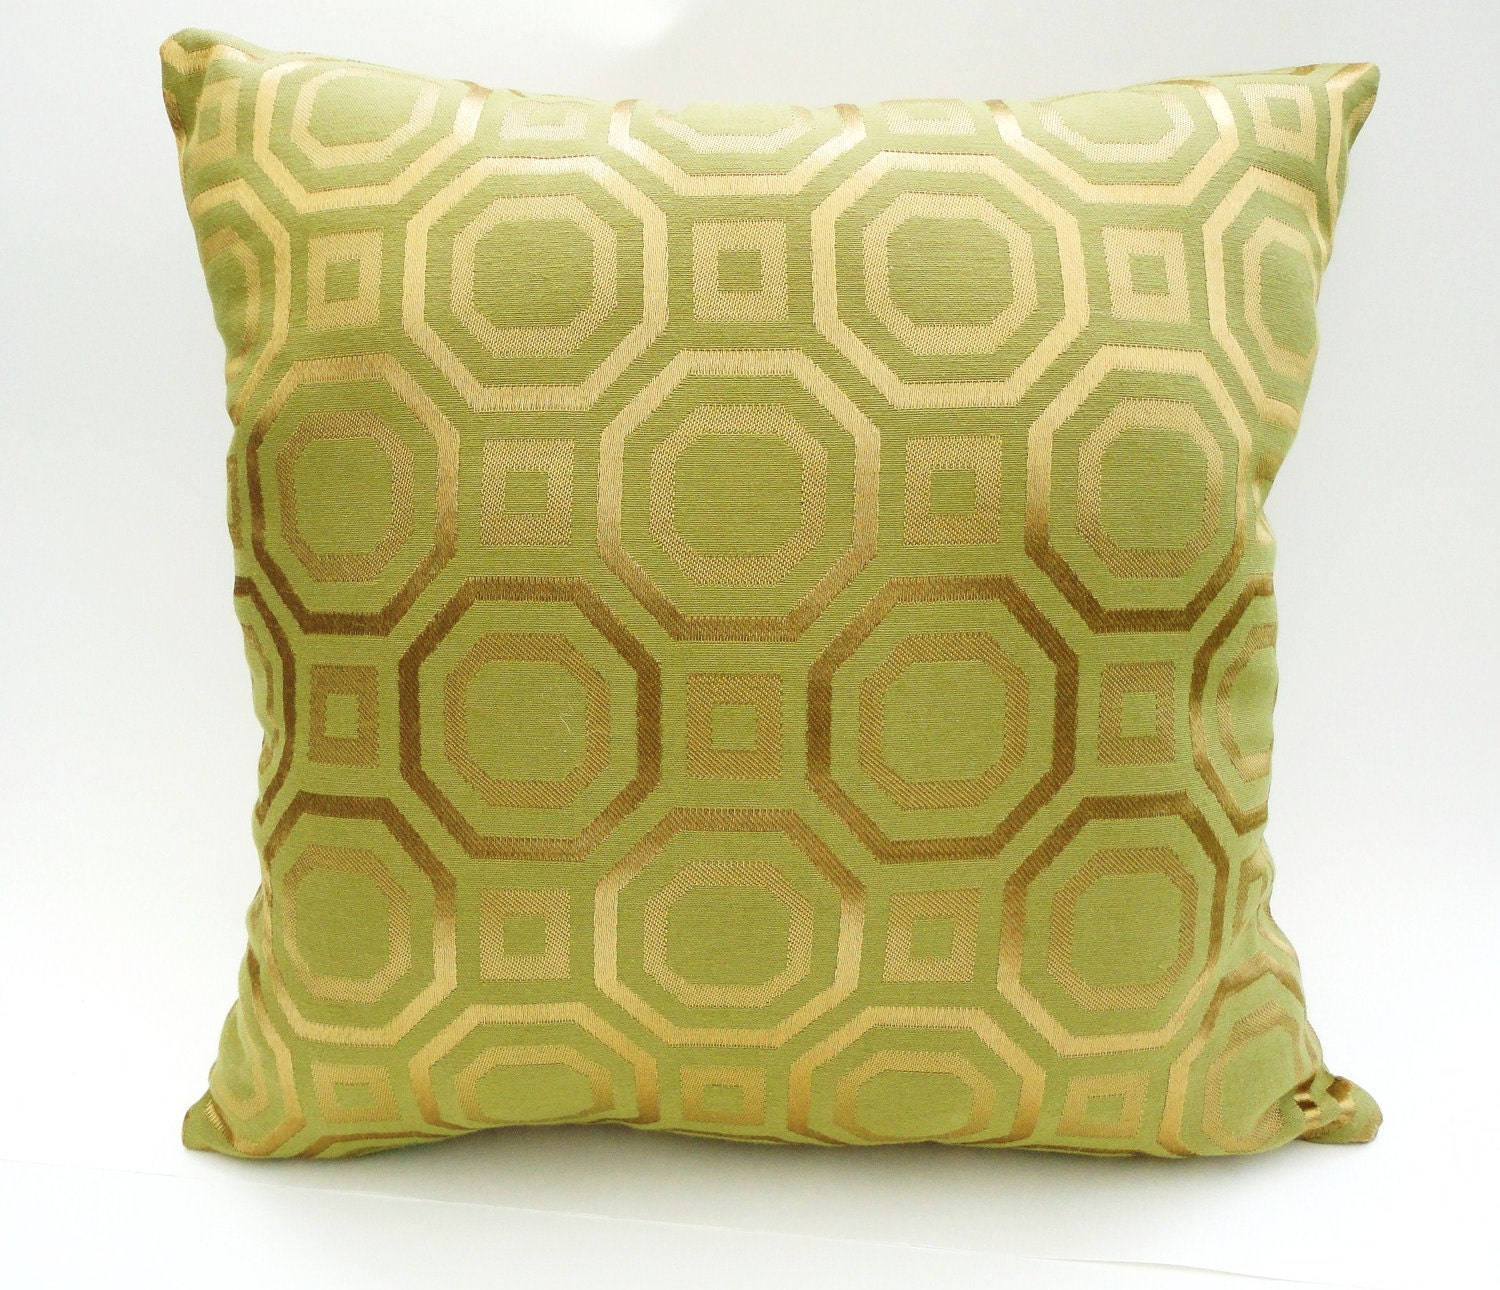 Pillow Cover 16 x 16 (40.5 cm) - Gold Retro Pattern